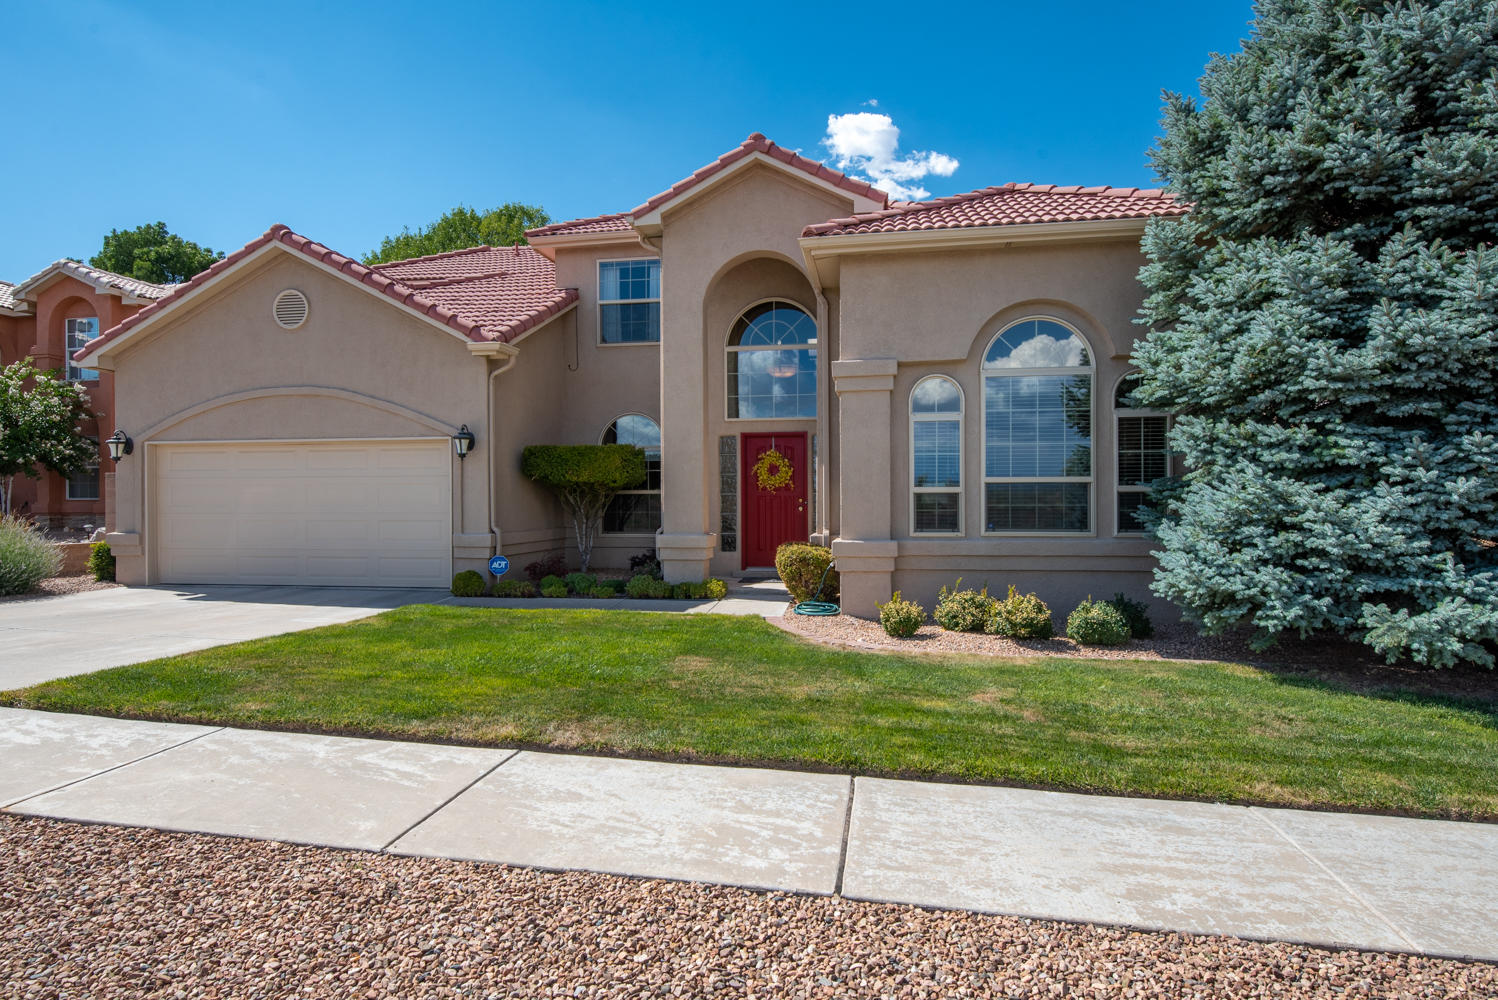 4309 NW Rancho Bonito Drive, Northwest Albuquerque and Northwest Heights, New Mexico